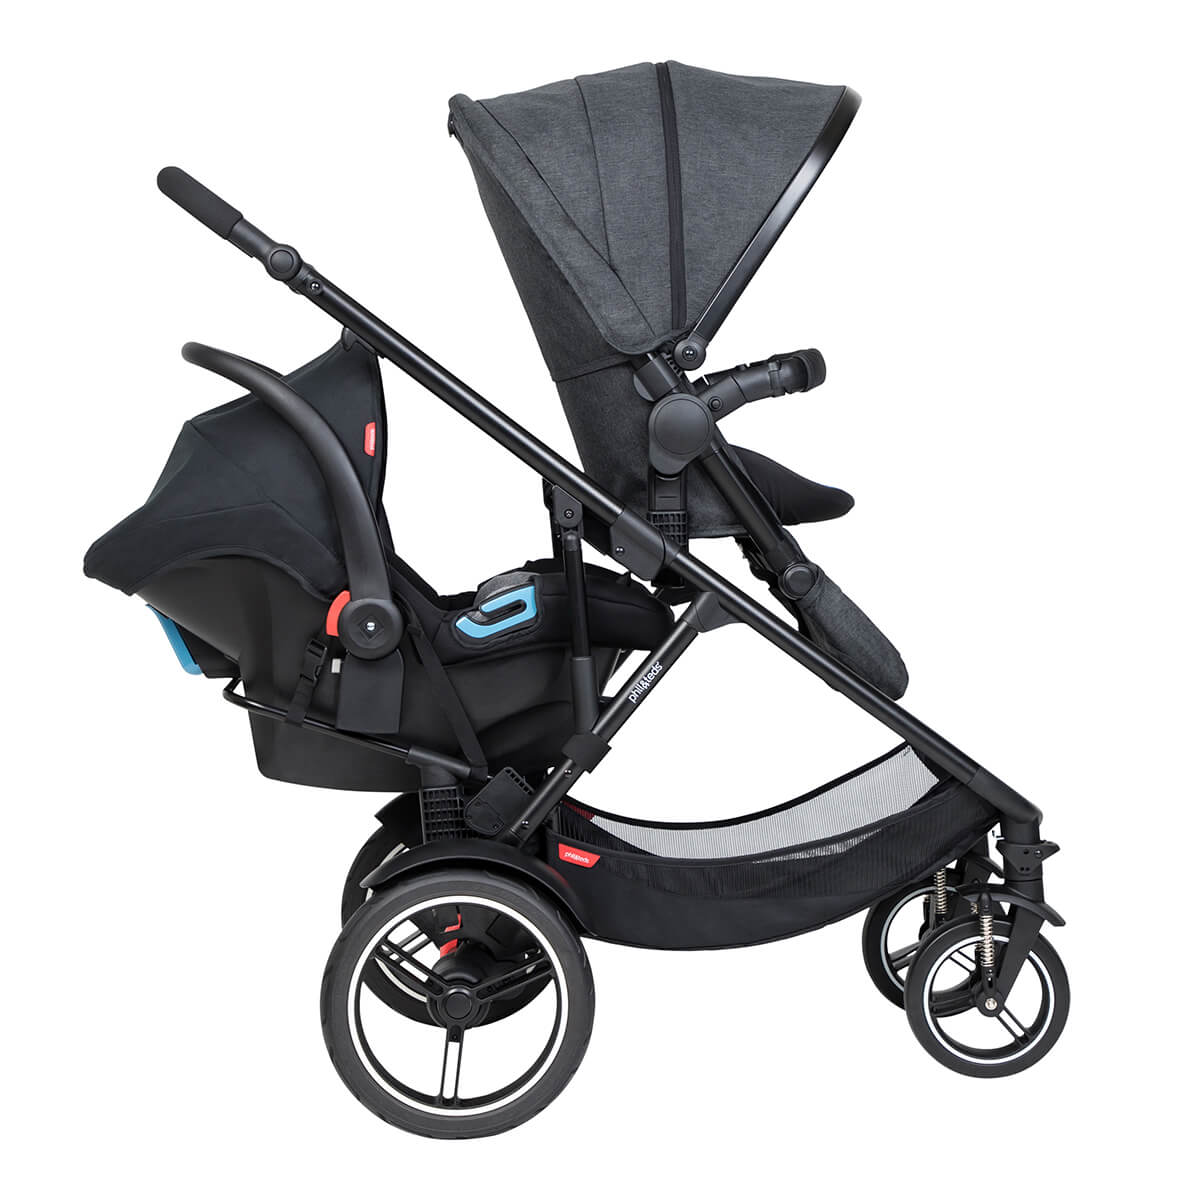 https://cdn.accentuate.io/4509529178200/19272668282968/philteds-voyager-buggy-in-forward-facing-mode-with-travel-system-in-the-rear-v1626484764091.jpg?1200x1200